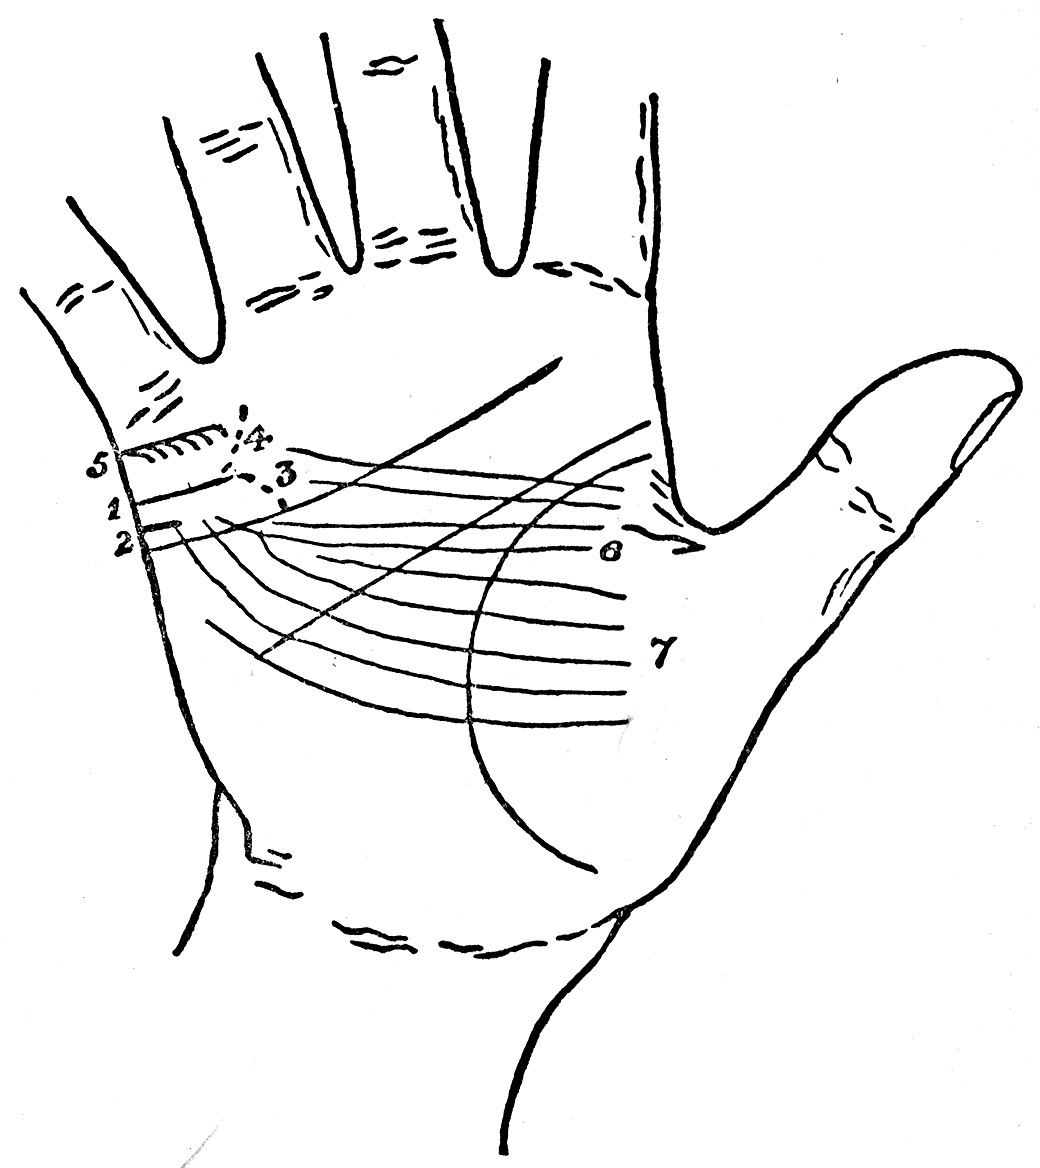 The Project Gutenberg eBook of Palmistry for all, by Cheiro